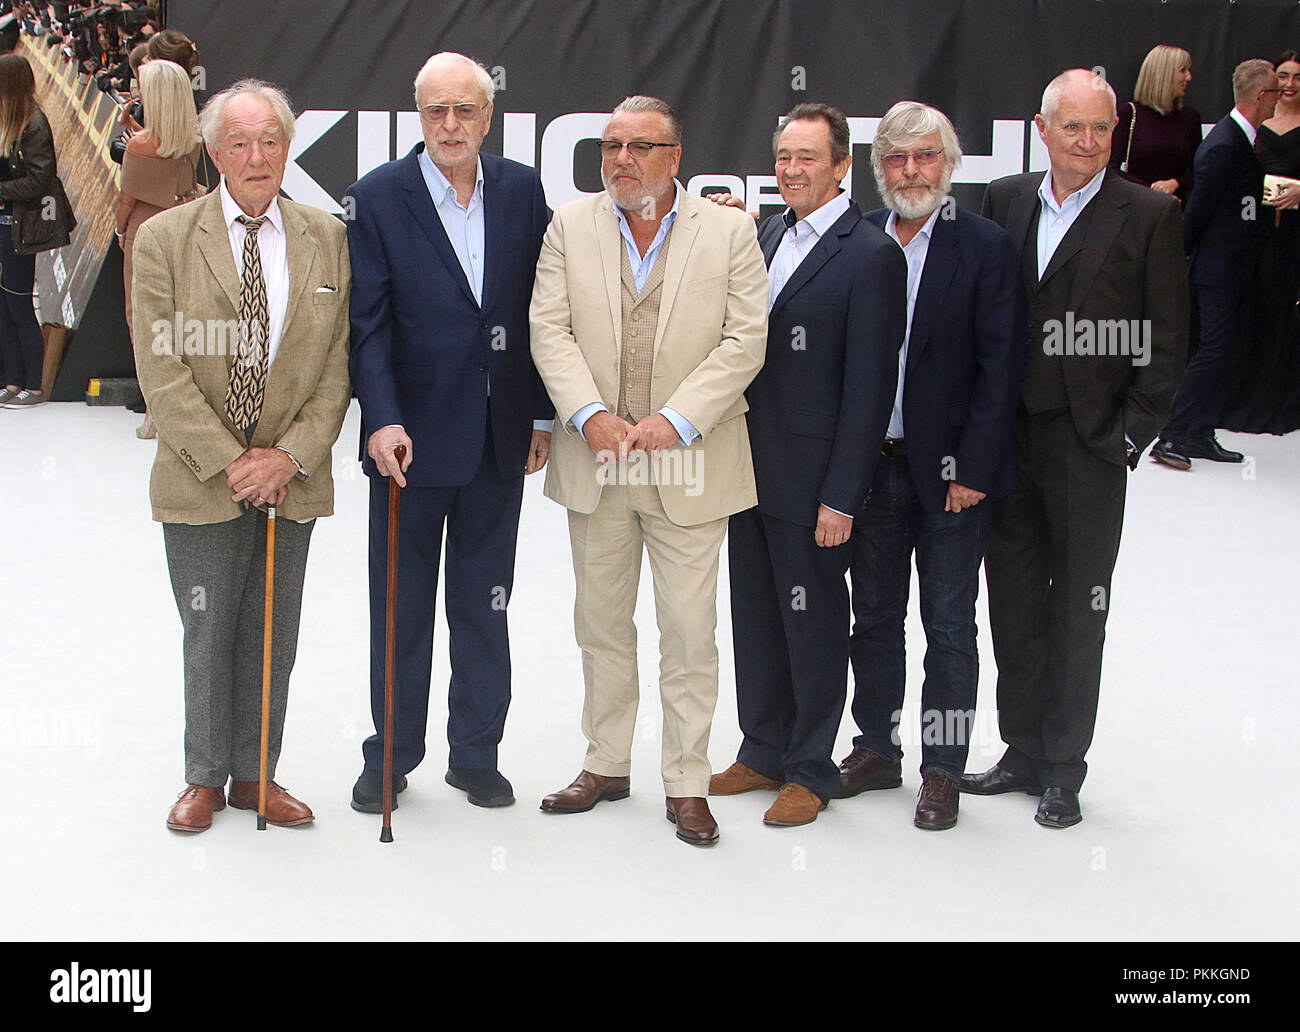 London, UK, 12. Sep 2018. Jim Broadbent, Michael Gambon, Sir Michael Caine, Ray Winstone, Sir Tom Courtenay und Paul Whitehouse nehmen an der König der Diebe Filmpremiere in London Stockfoto